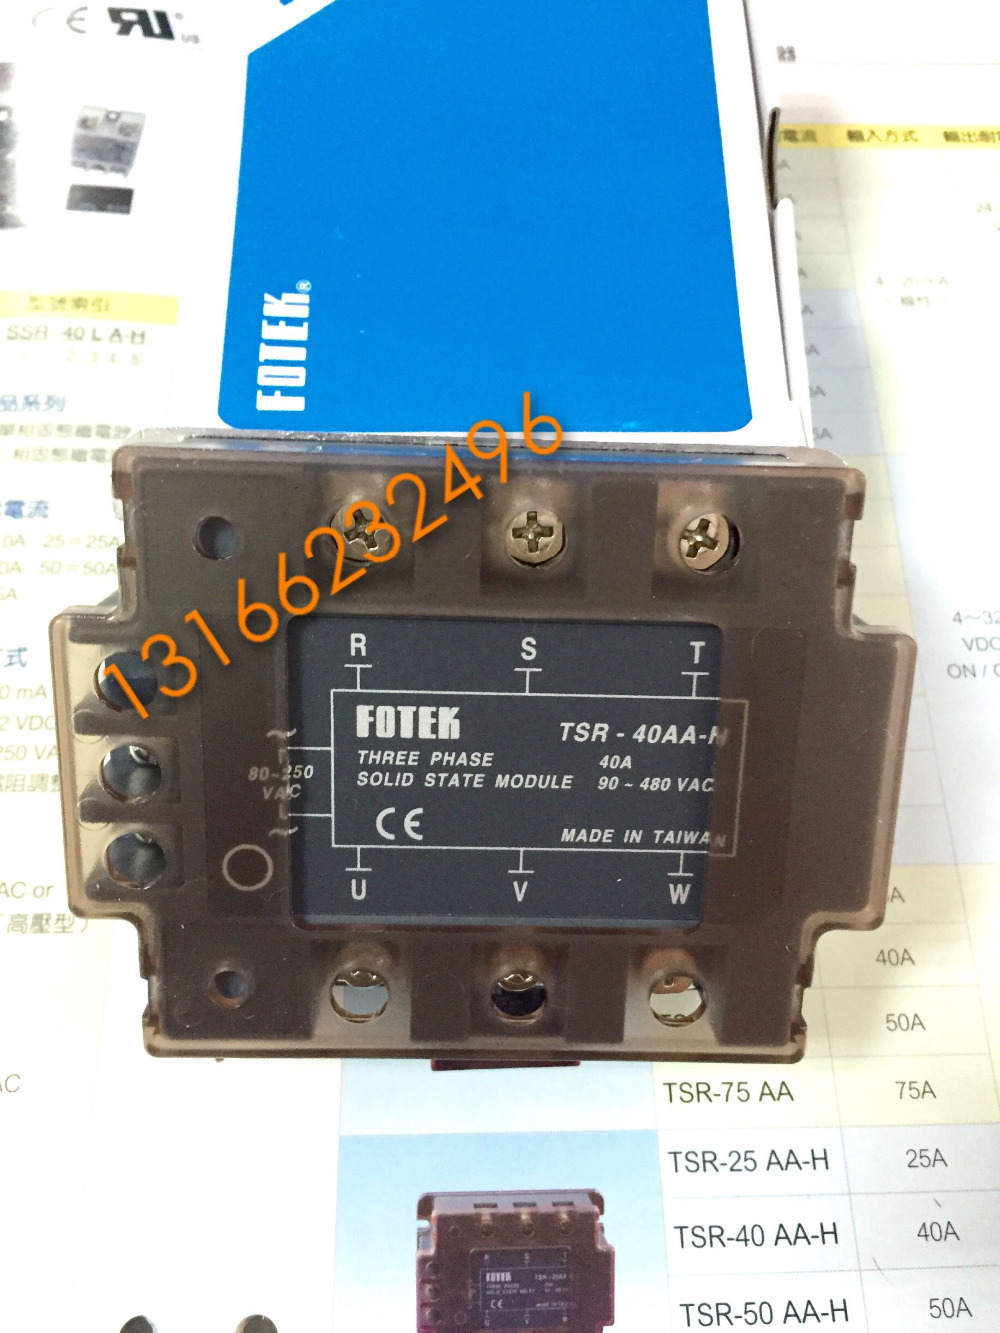 100% Original Authentic Taiwans  FOTEK three-phase solid state relay TSR-40AA-H100% Original Authentic Taiwans  FOTEK three-phase solid state relay TSR-40AA-H